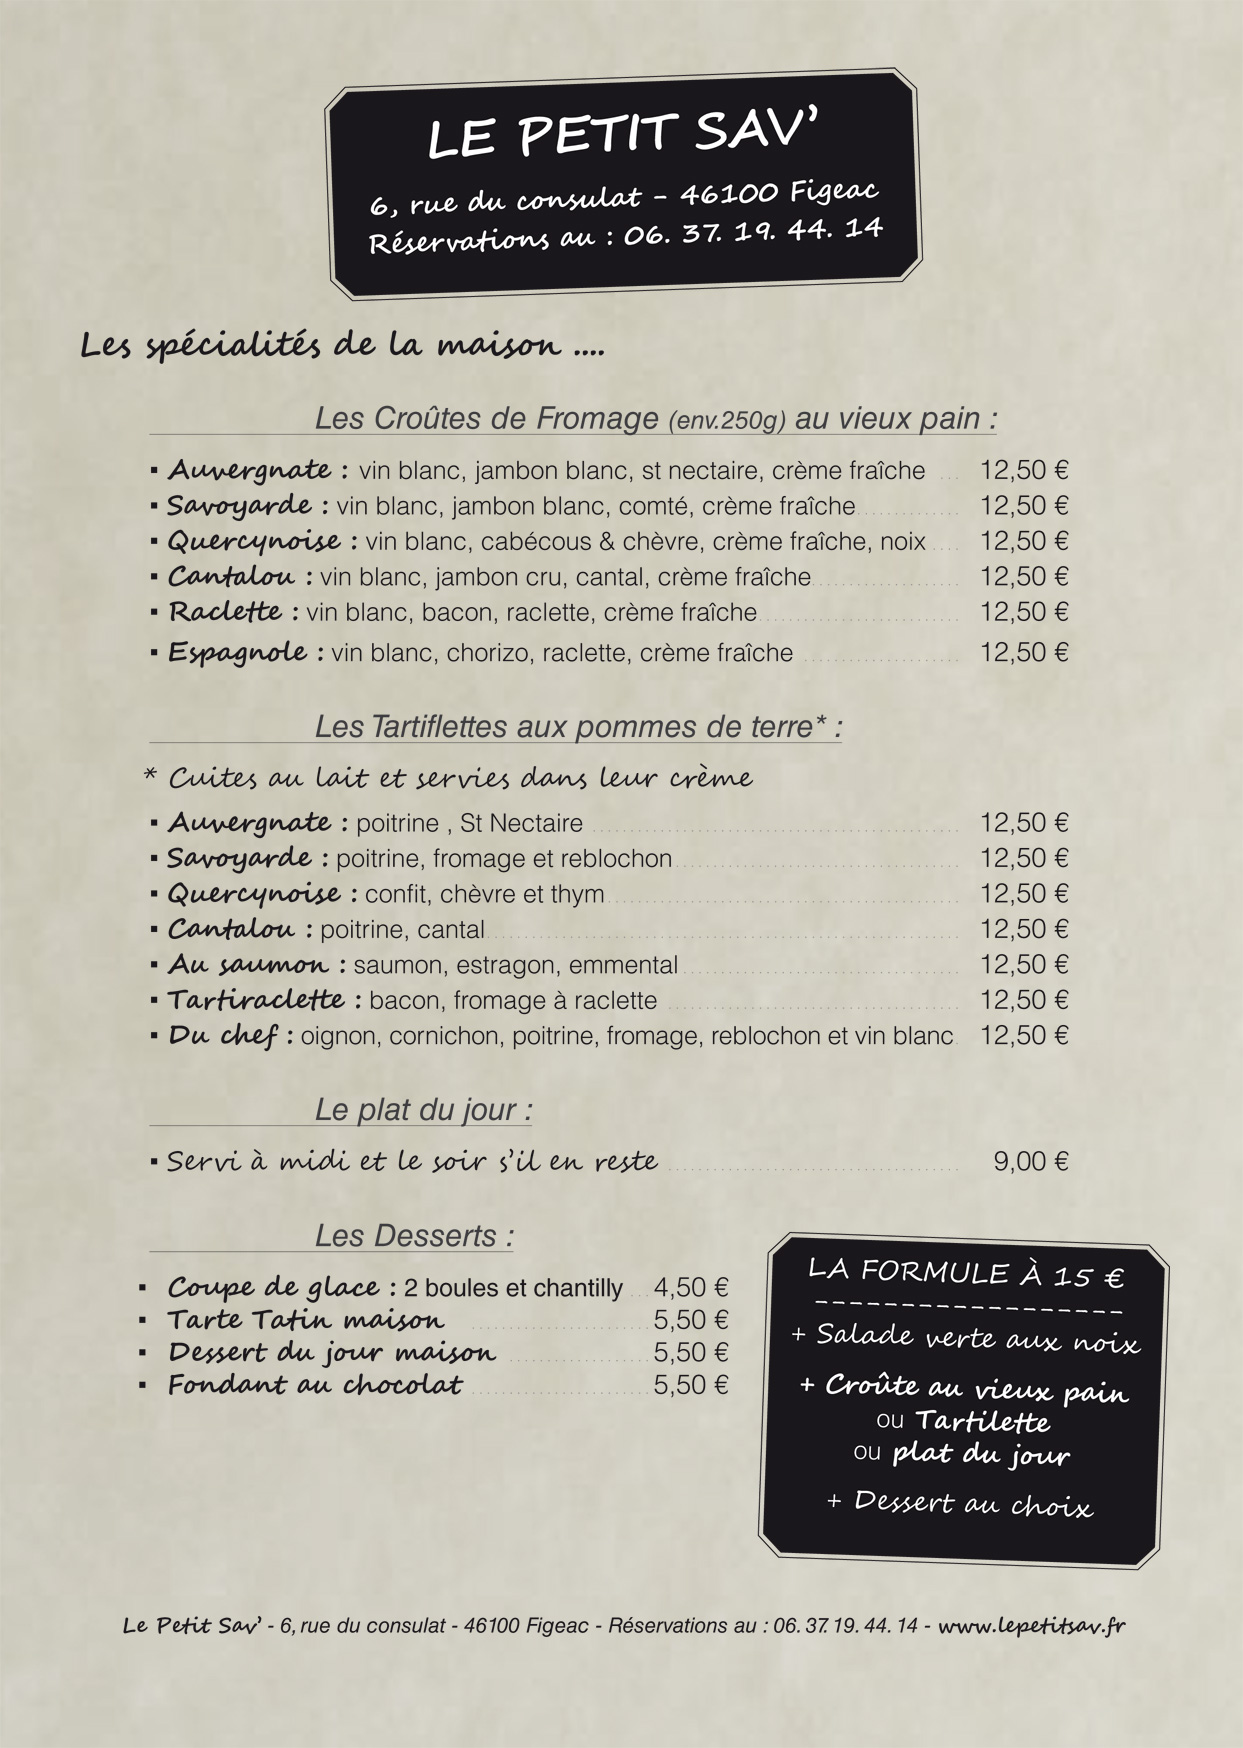 Mise en page d 39 un menu de restaurant for Mise en page de conception maison en ligne gratuitement